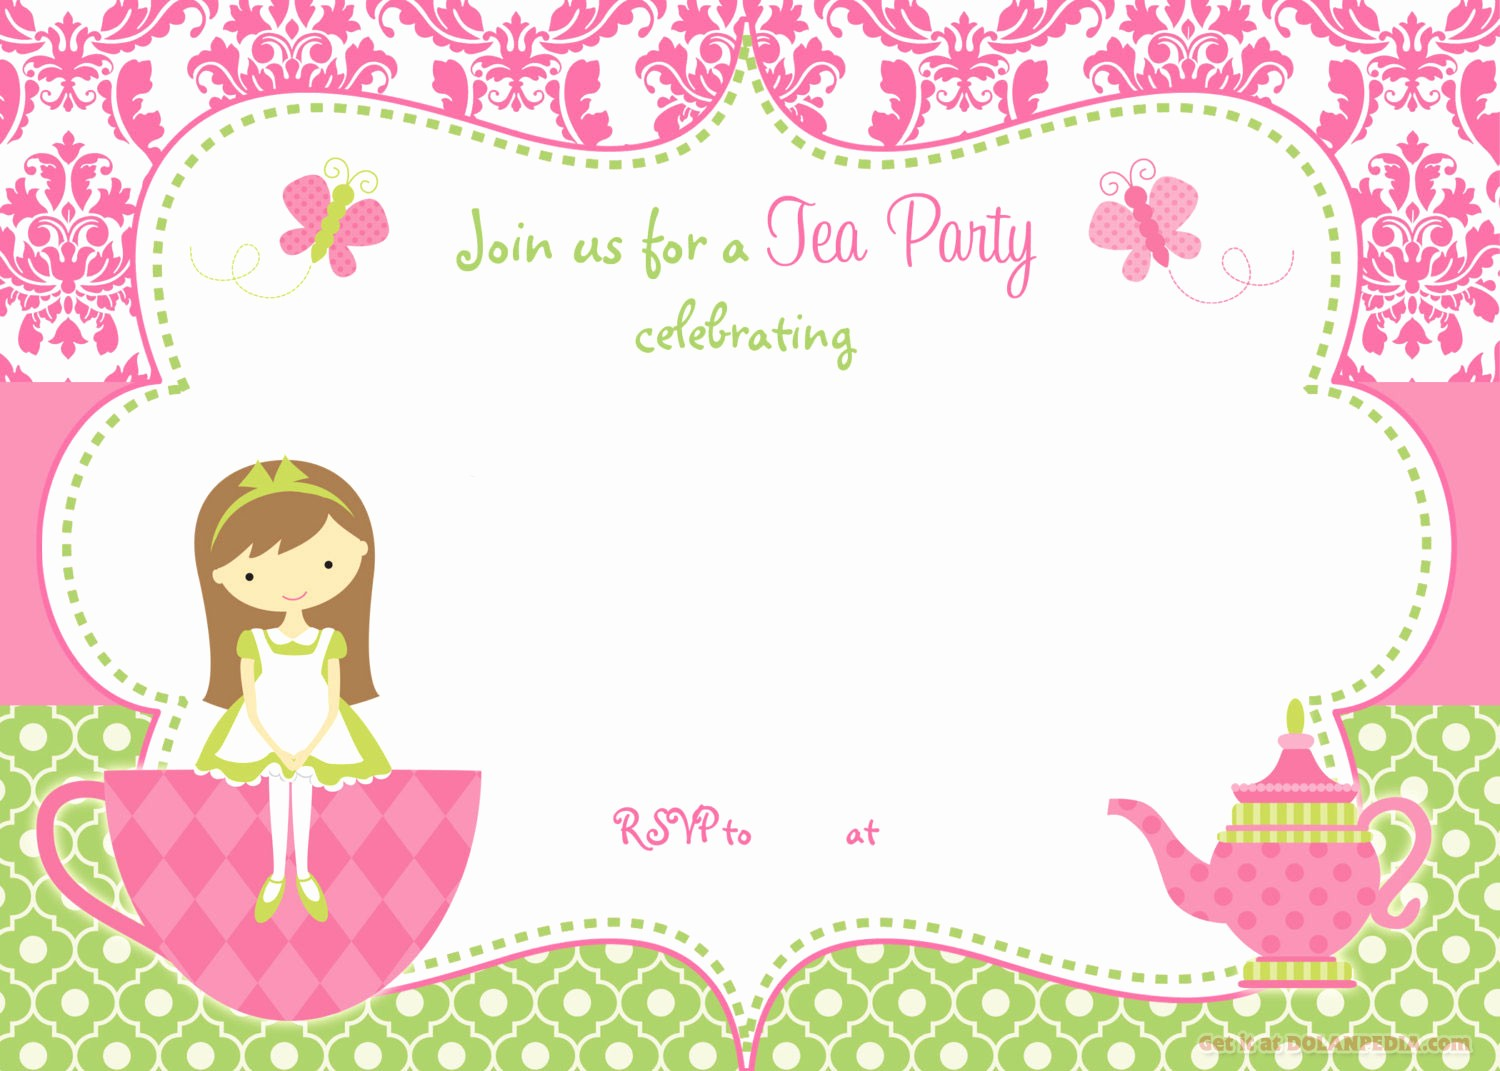 Free Printable Party Invitations Templates Luxury Free Printable Tea Party Invitation Template for Girl